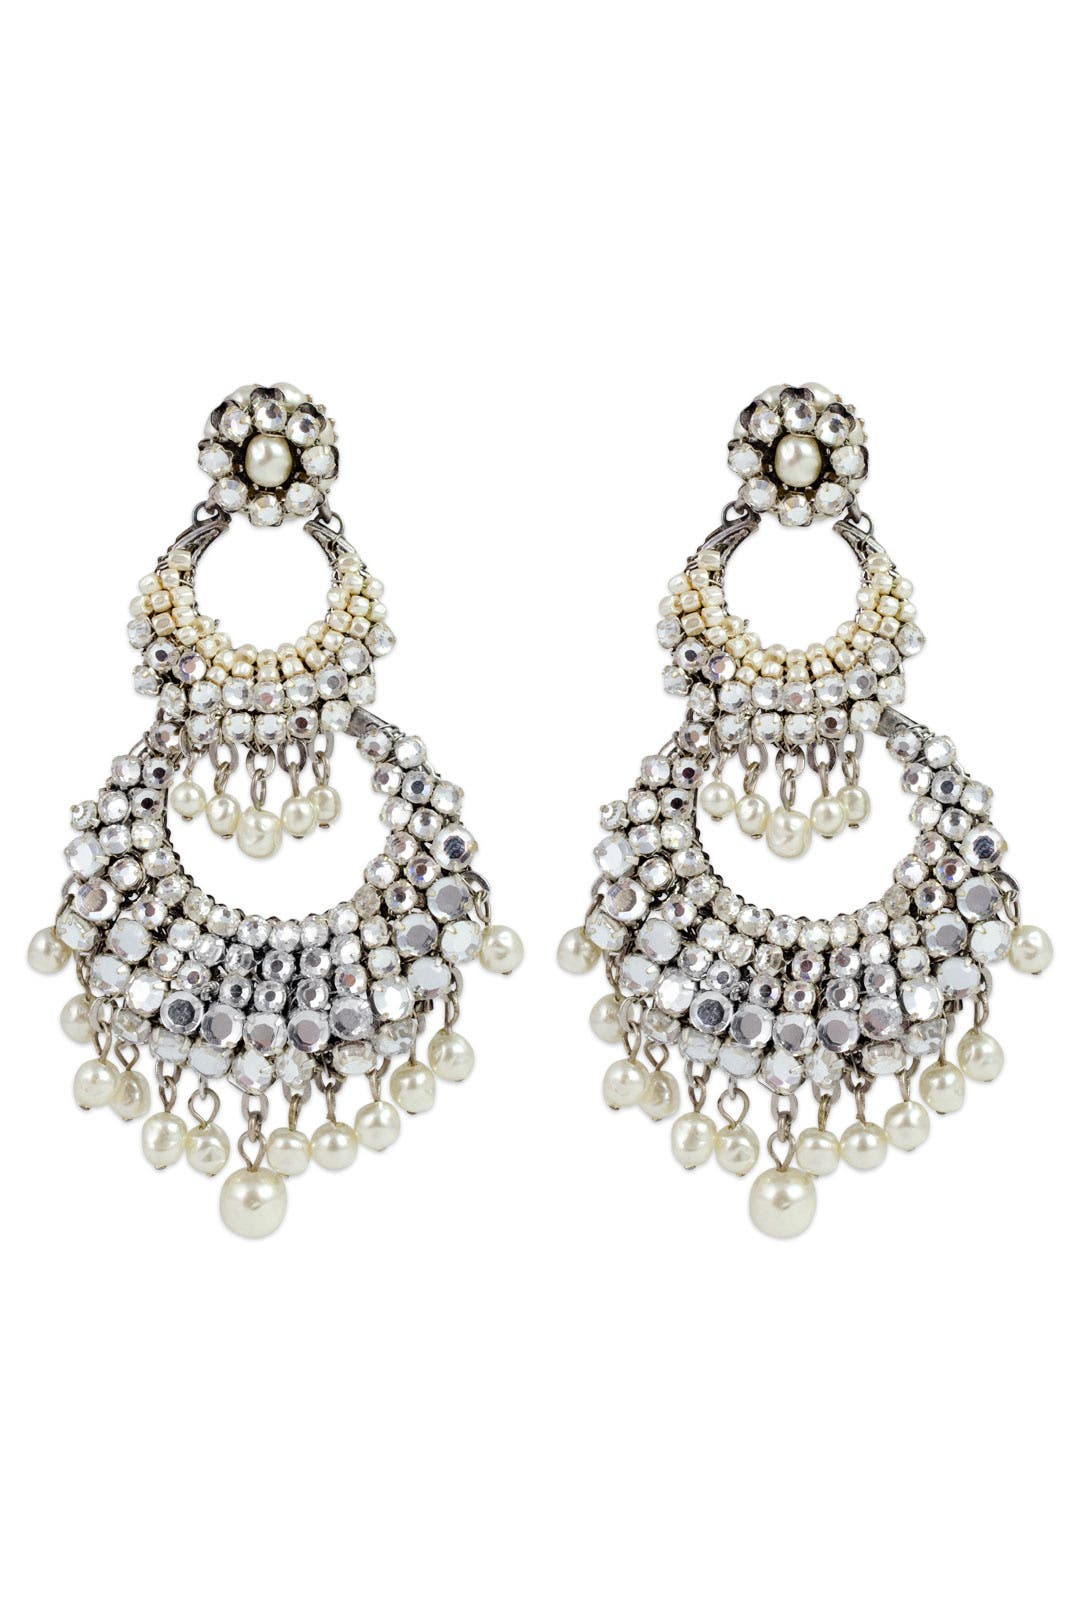 Down the Aisle Earrings by Miriam Haskell